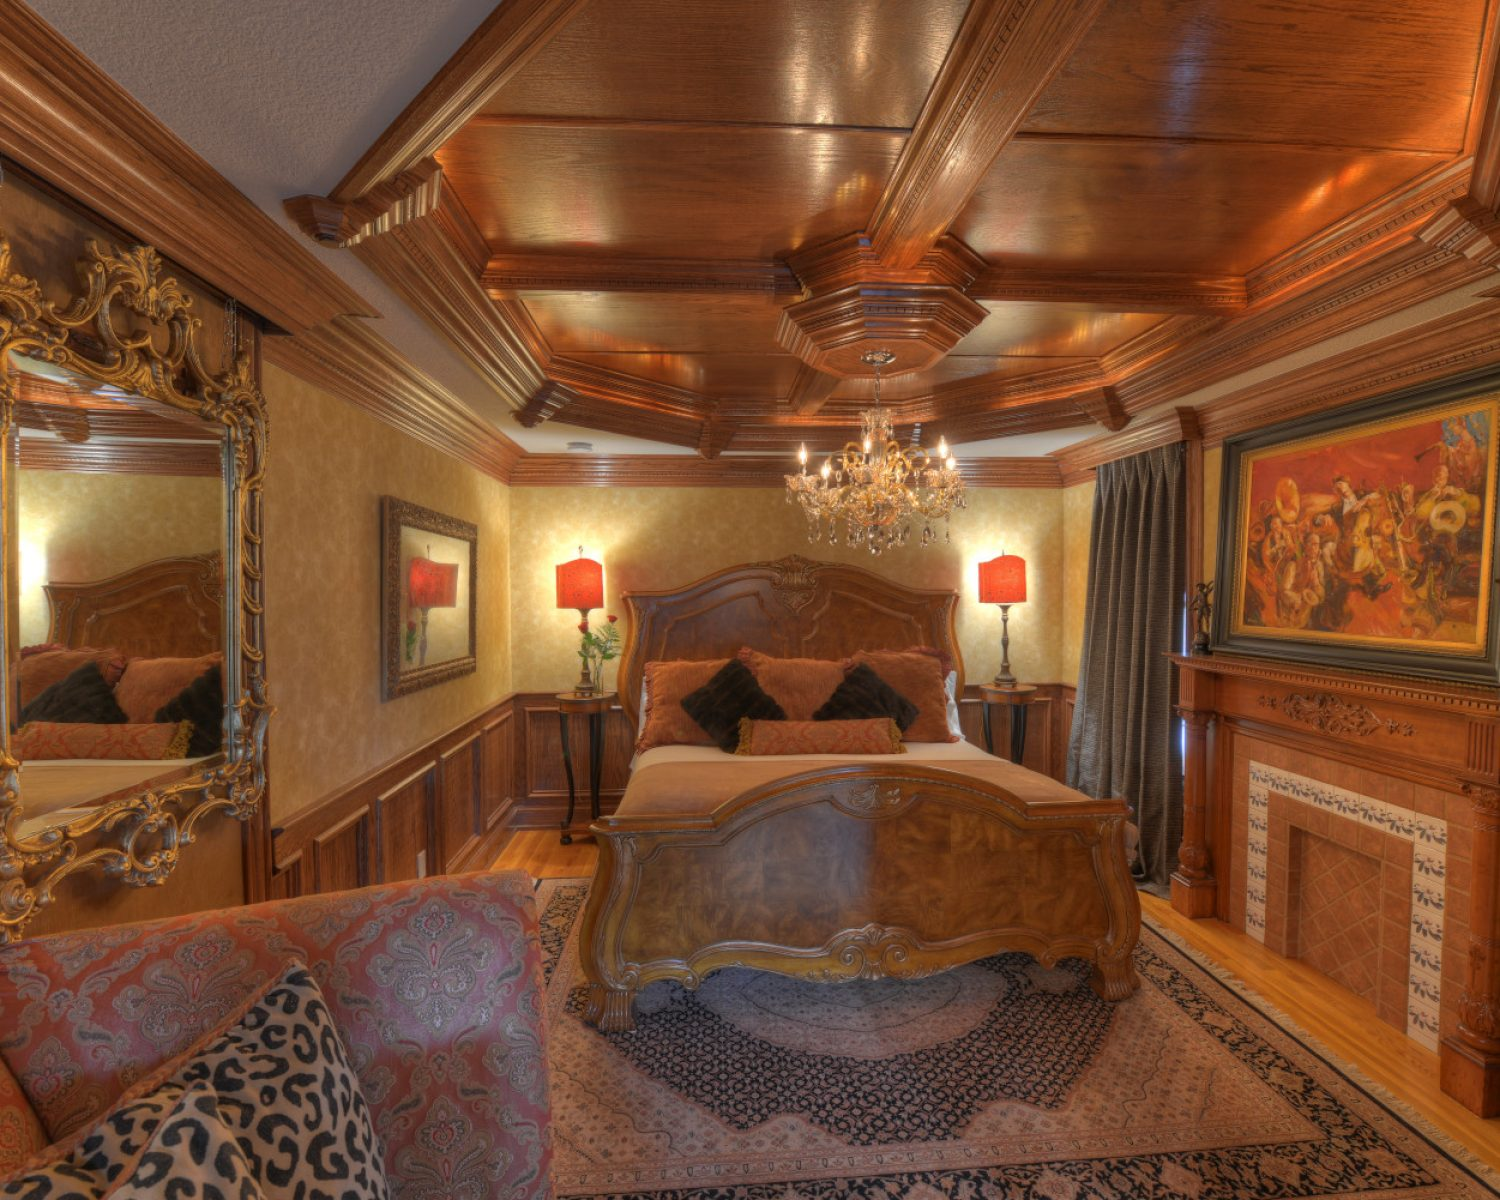 View of the king size bed